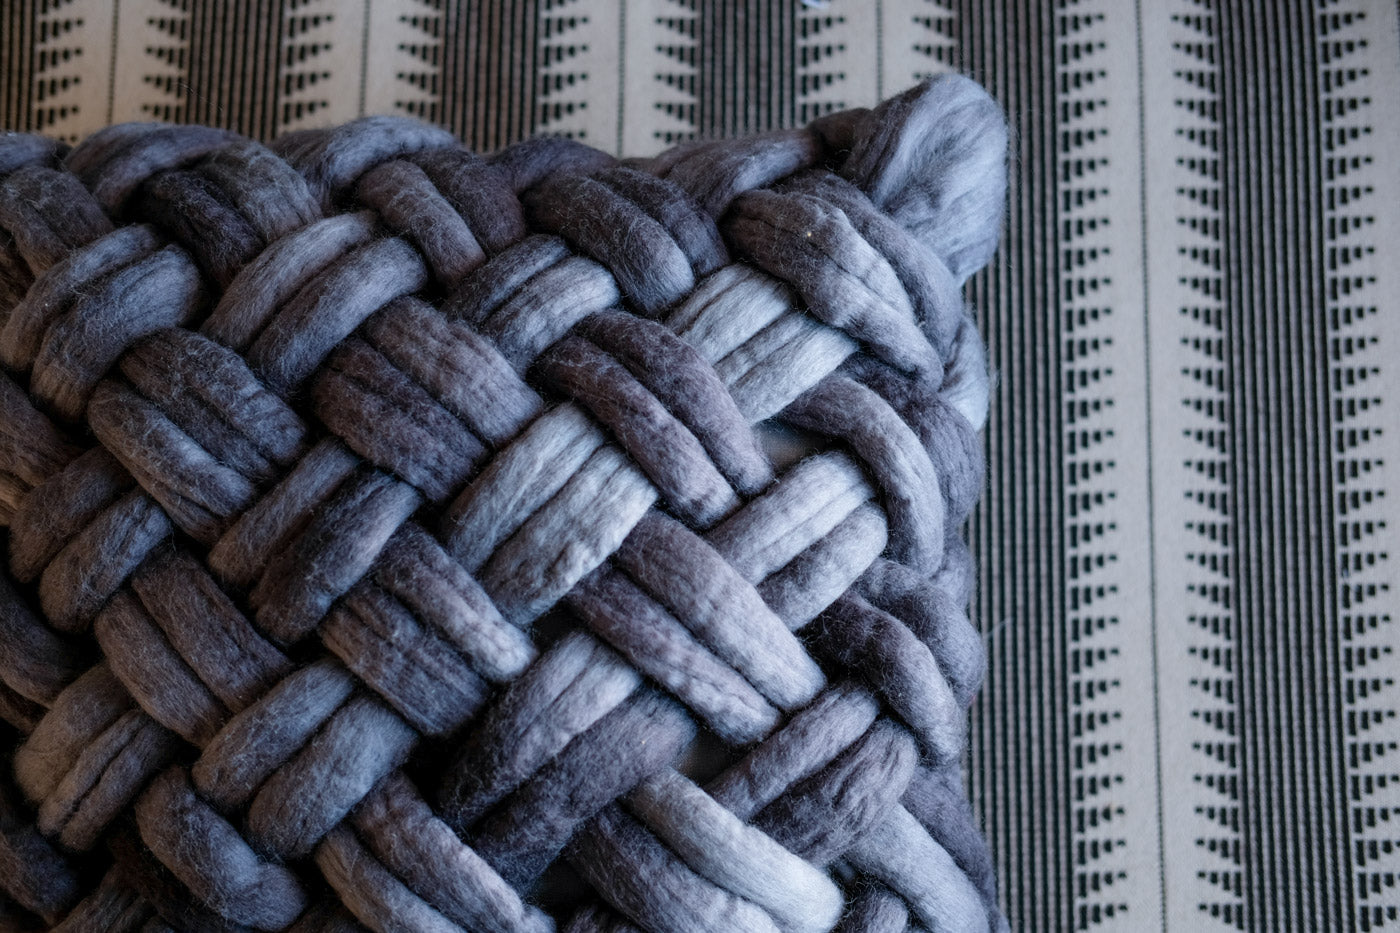 Closeup of basketweaving technique from Weaving Within Reach